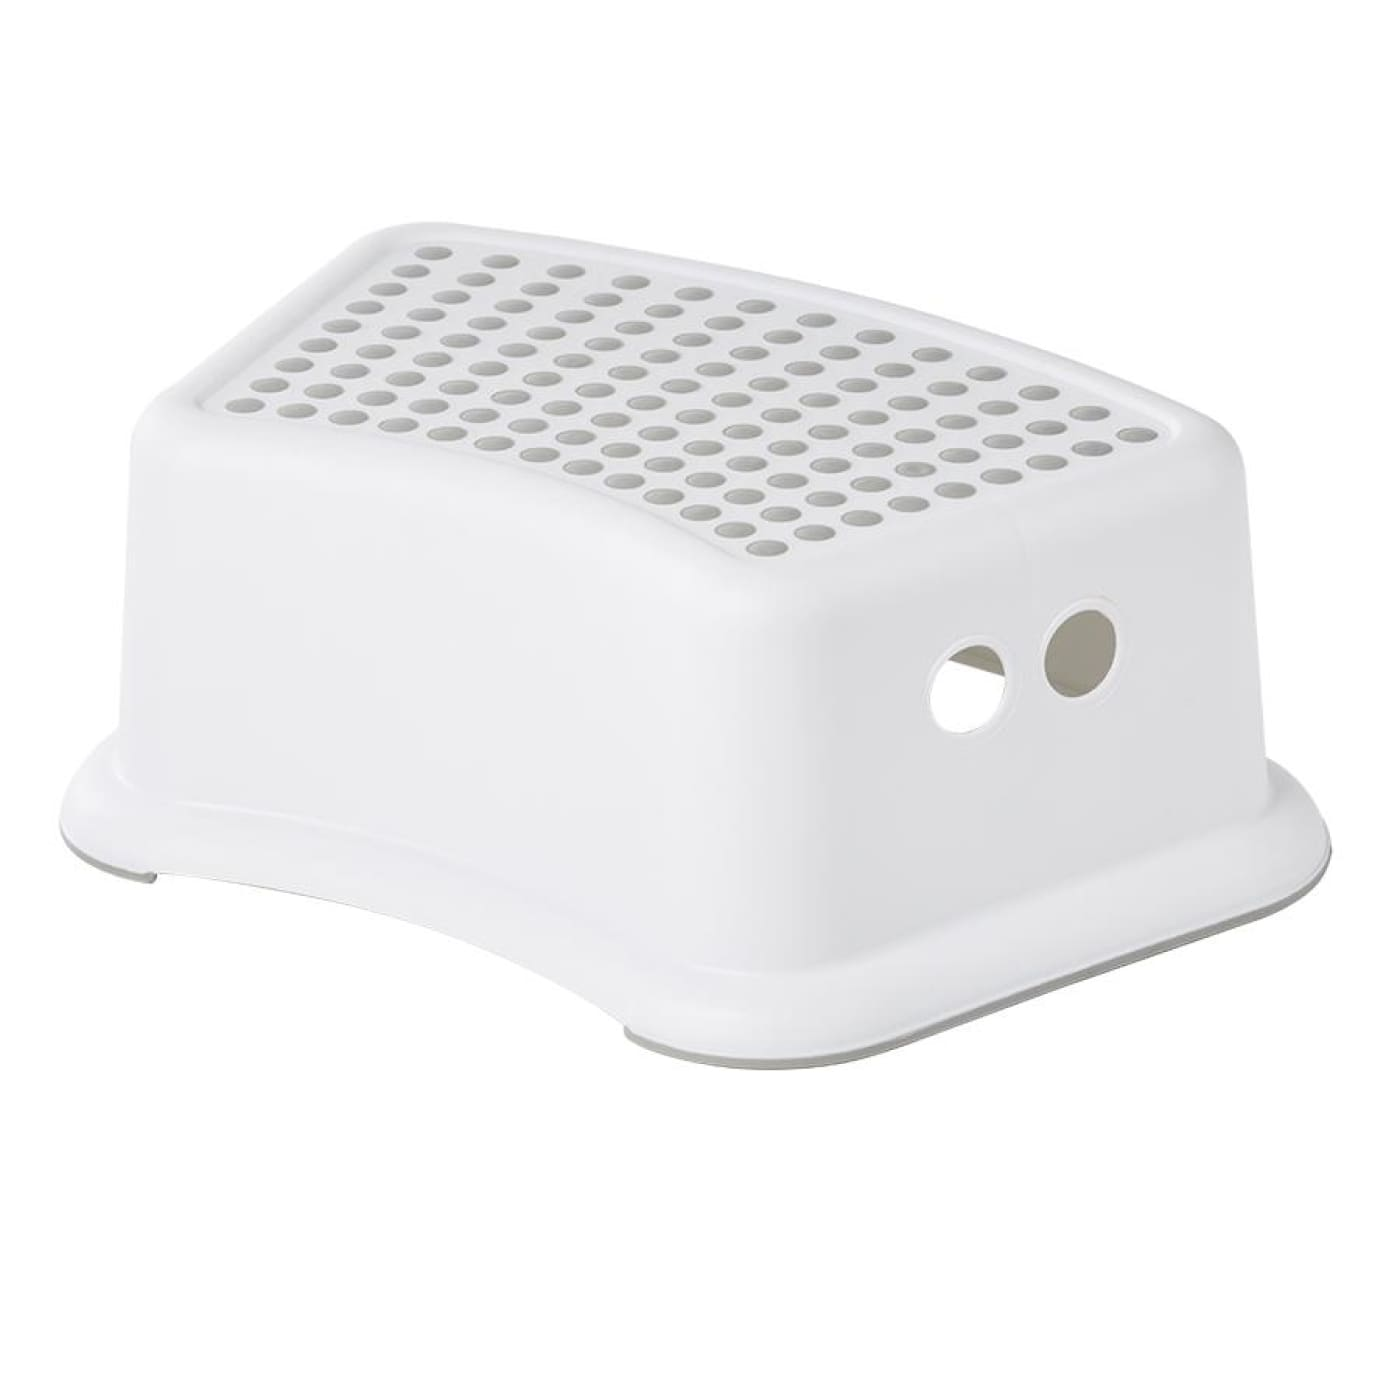 BIG SOFTIES Plastic Step Stool WHITE - BATHTIME & CHANGING - TOILET TRAINING/STEP STOOLS